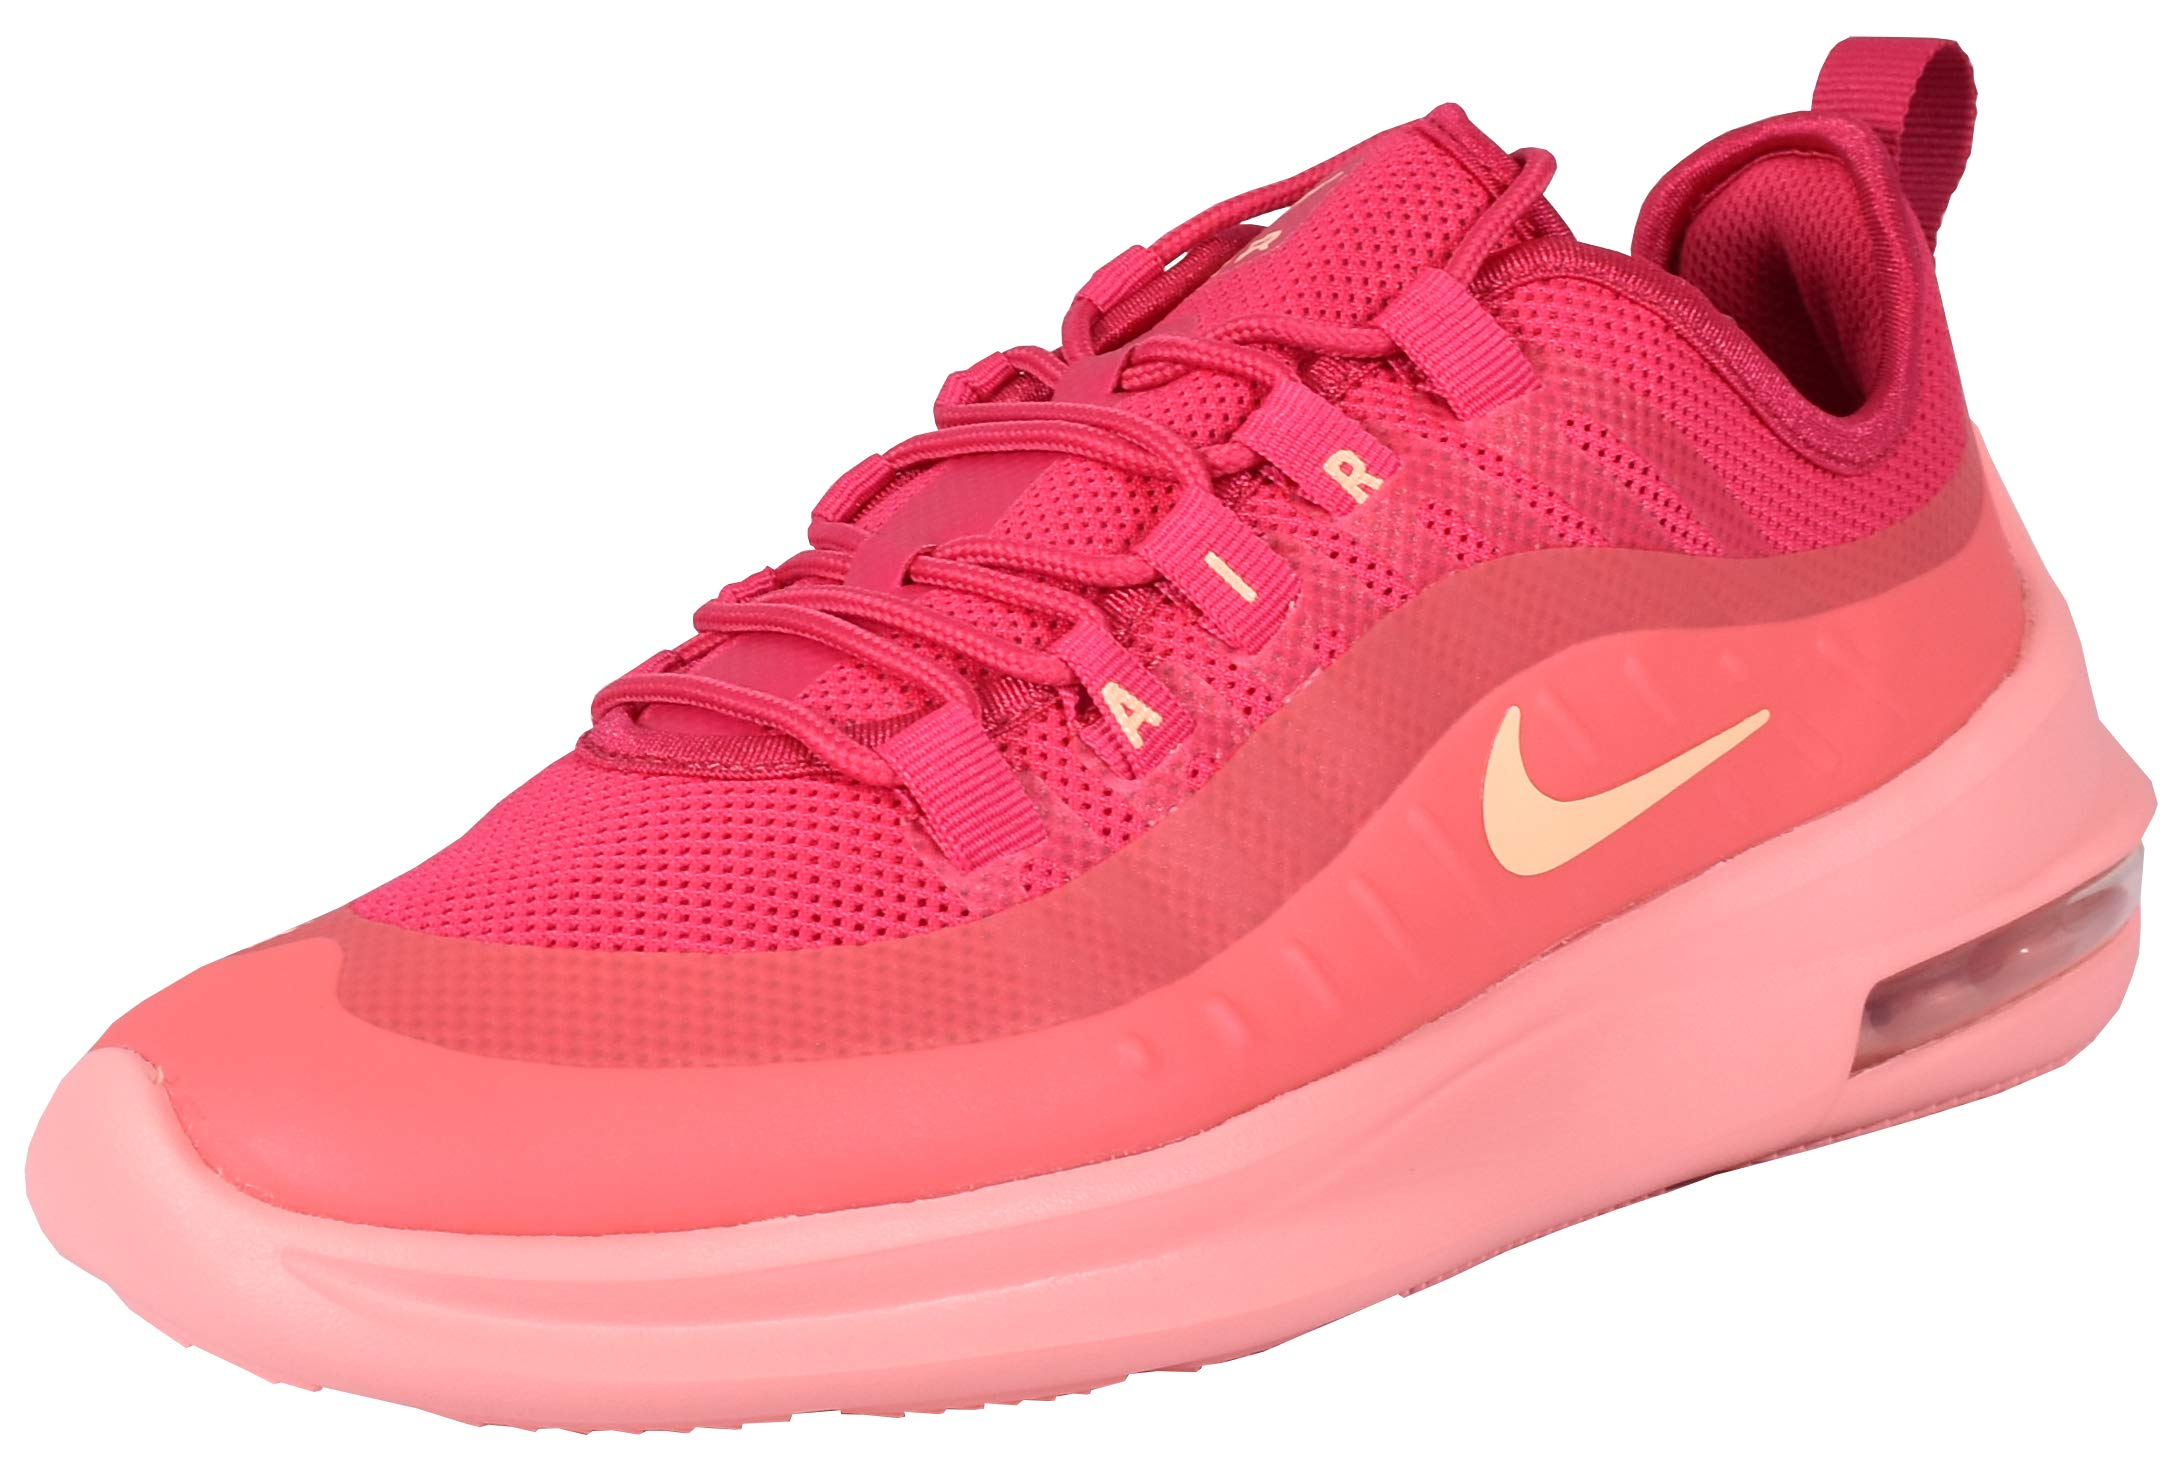 Nike Women's Air Max Axis Running Shoes. Rush Pink/Melon Tint/Bleached Coral, Size 6